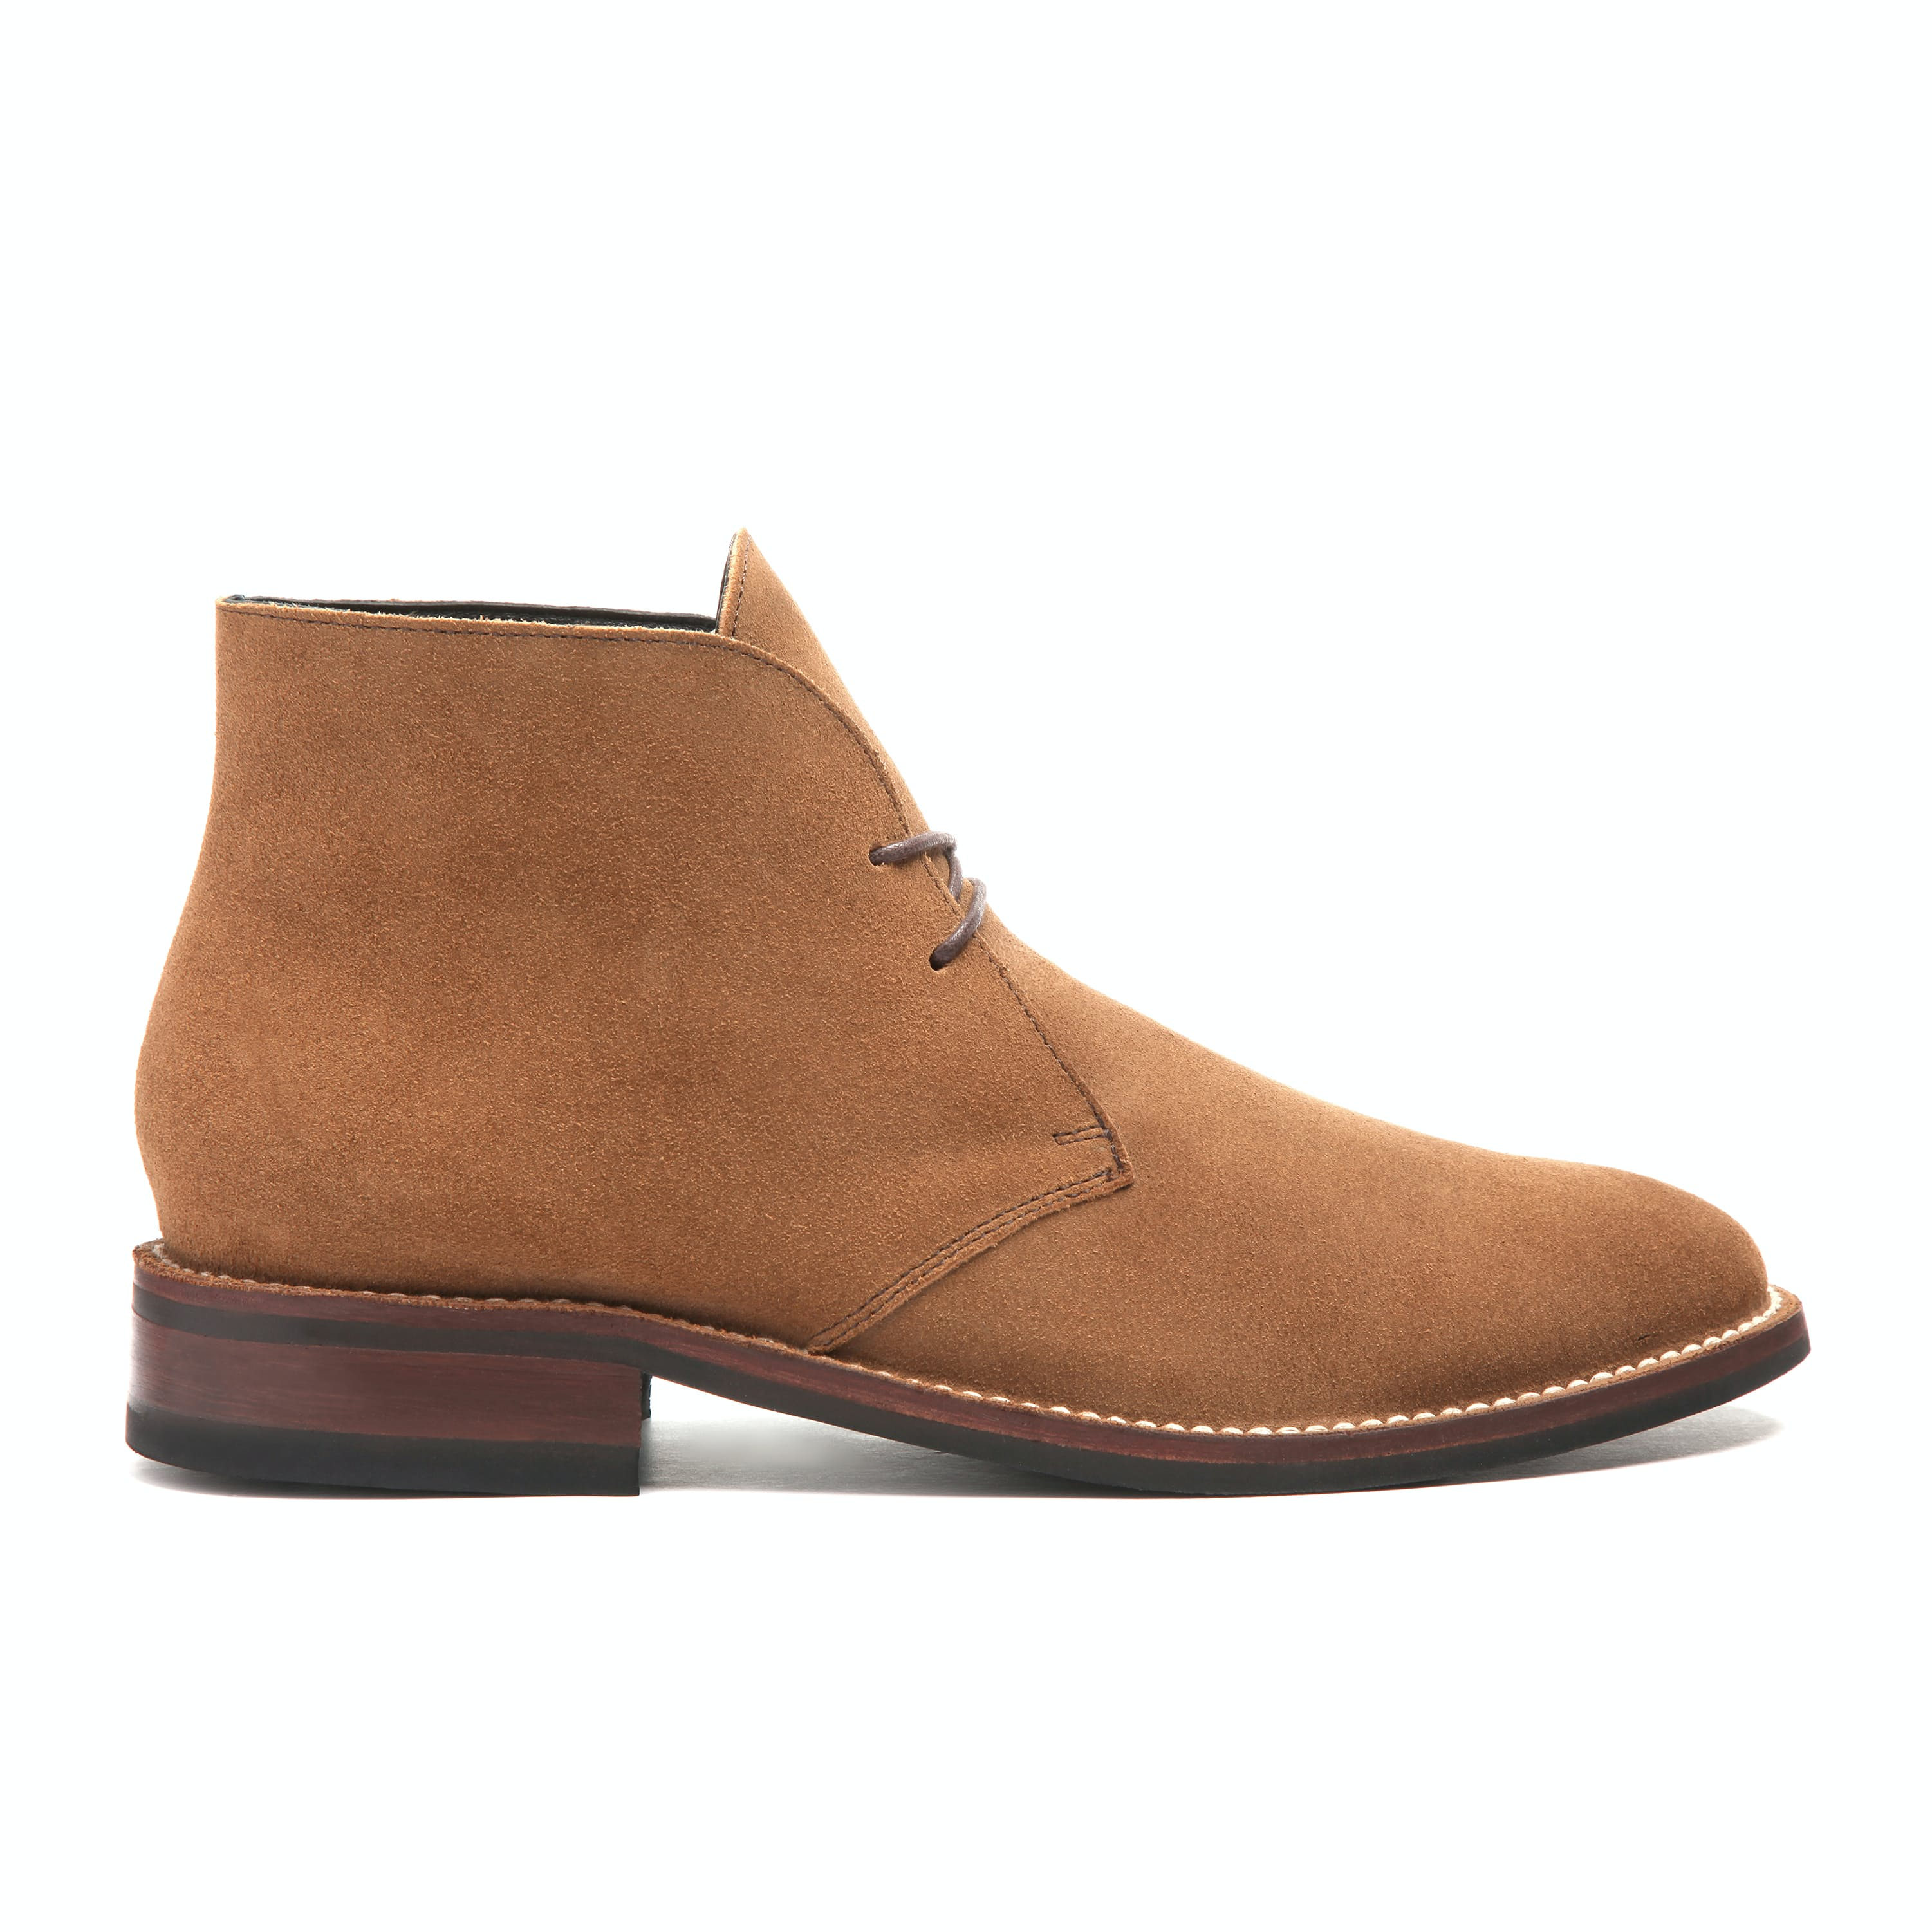 Ifjo7kxnmm thursday boot company scout chukka 0 original